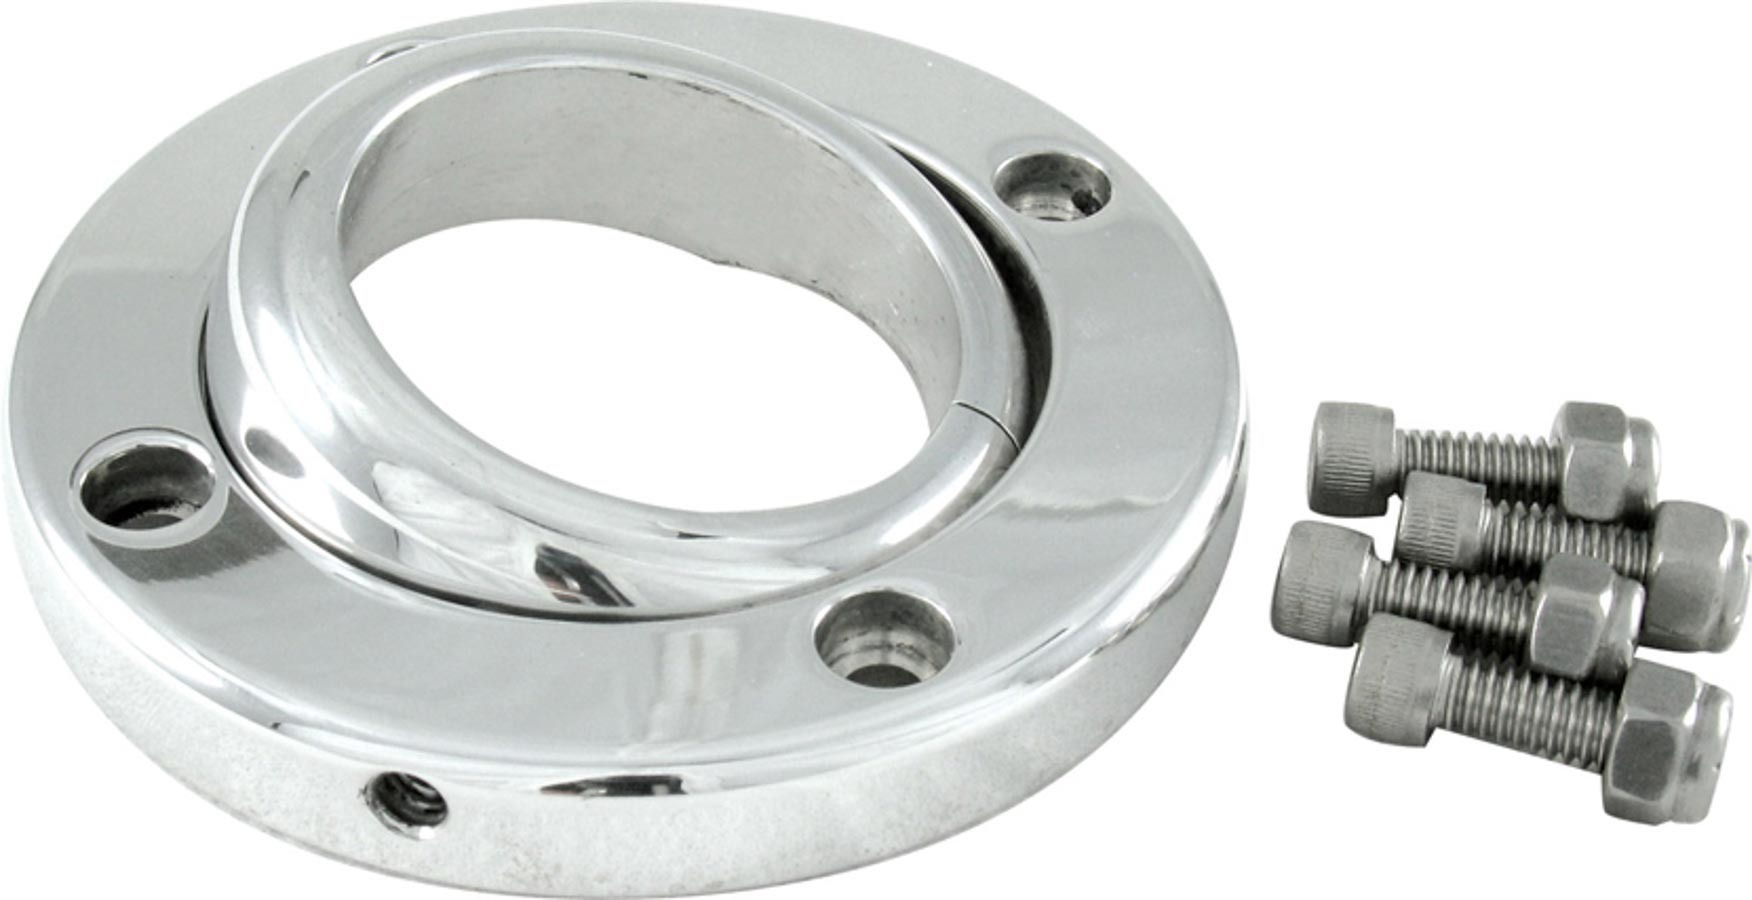 Borgeson 909004 Steering Column Bracket, 3-7/8 in Outer Diameter, 2 in Diameter Tube, Swivel, Aluminum, Polished, Each